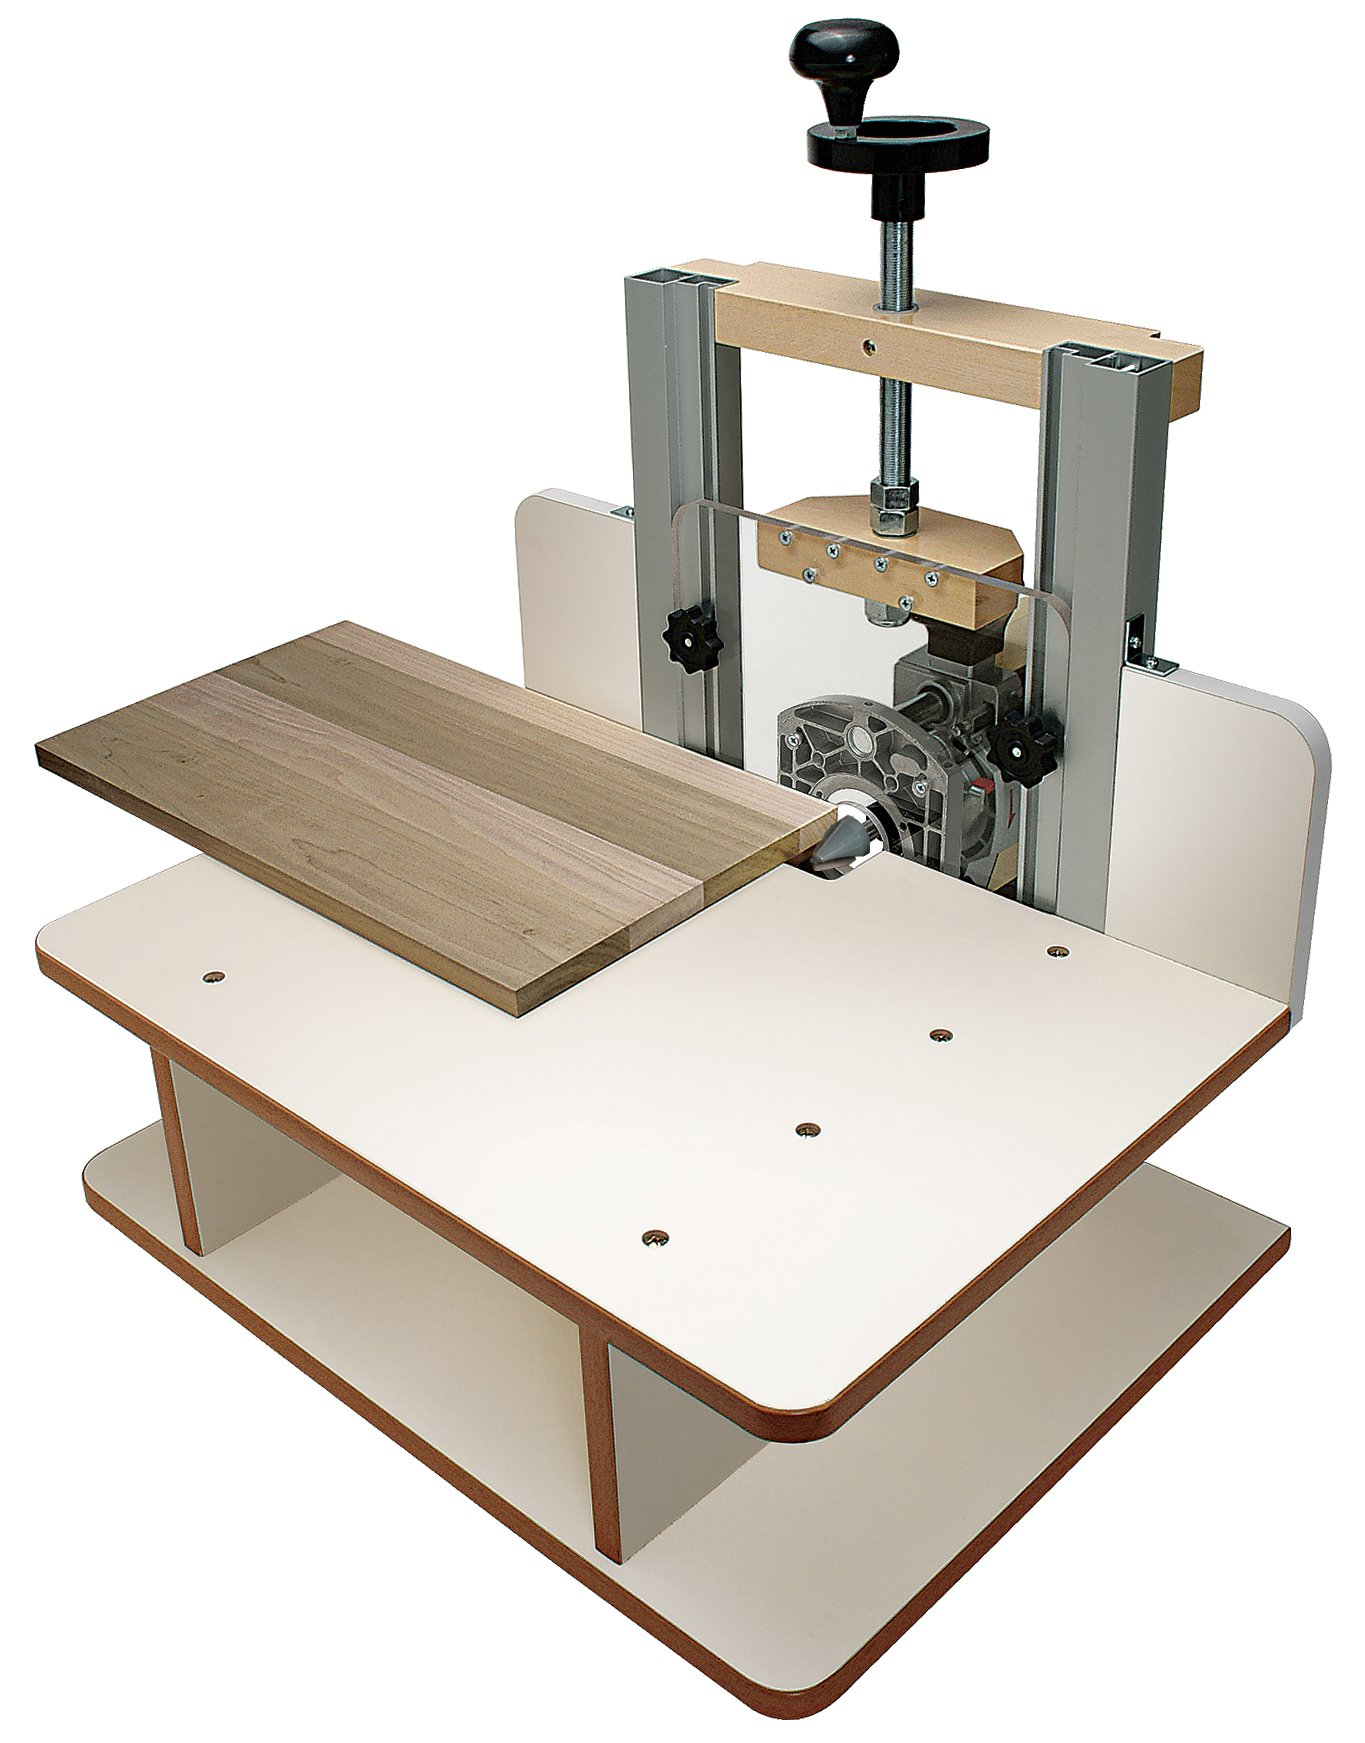 MLCS 9767 The Flatbed Horizontal Router Table by MLCS